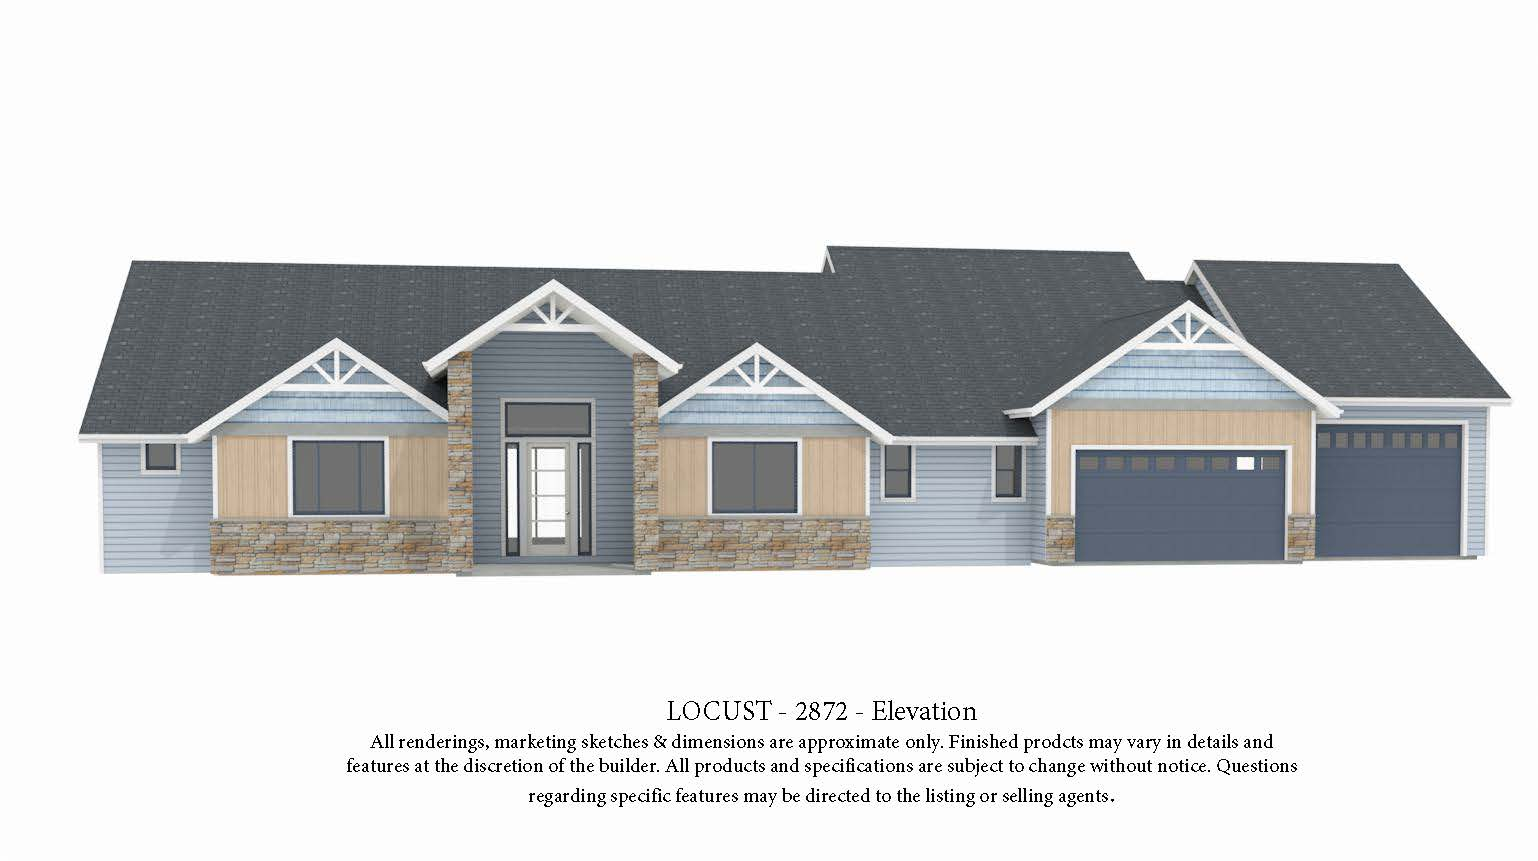 The Locust Plan by Acme Homes